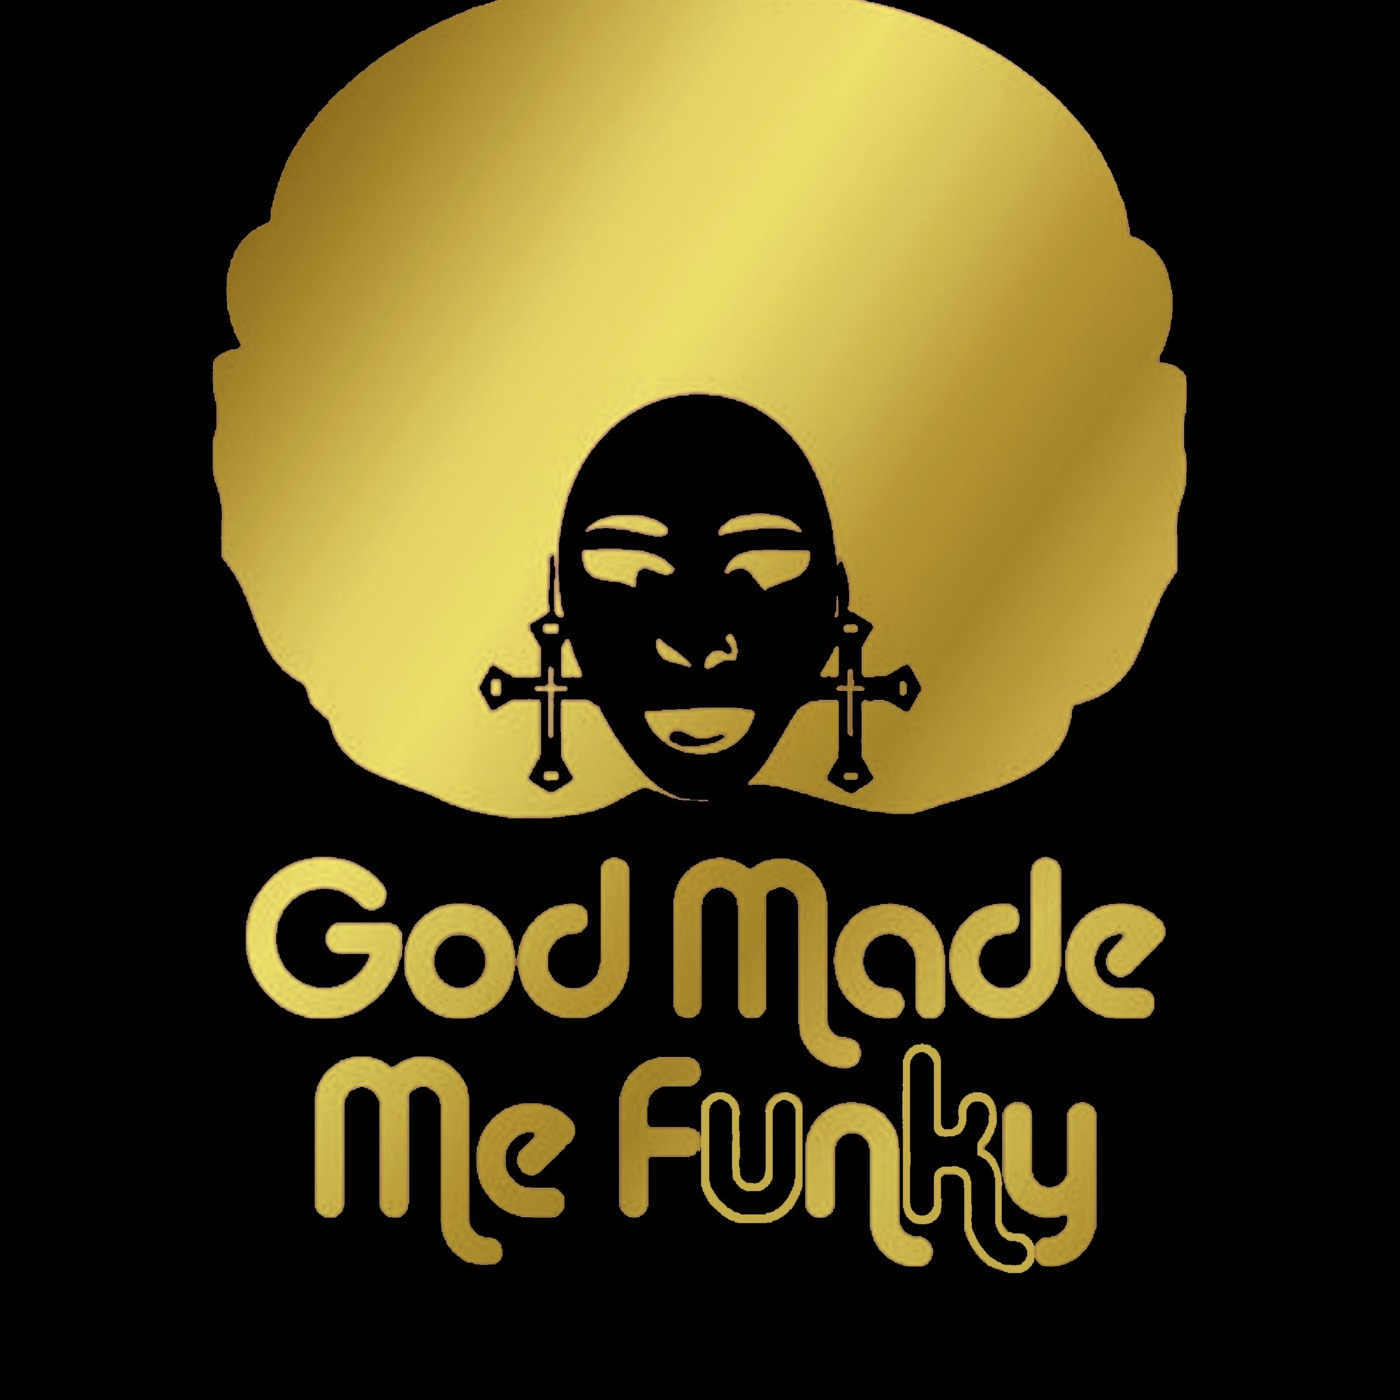 GOD MADE ME FUNKY UK Podcast